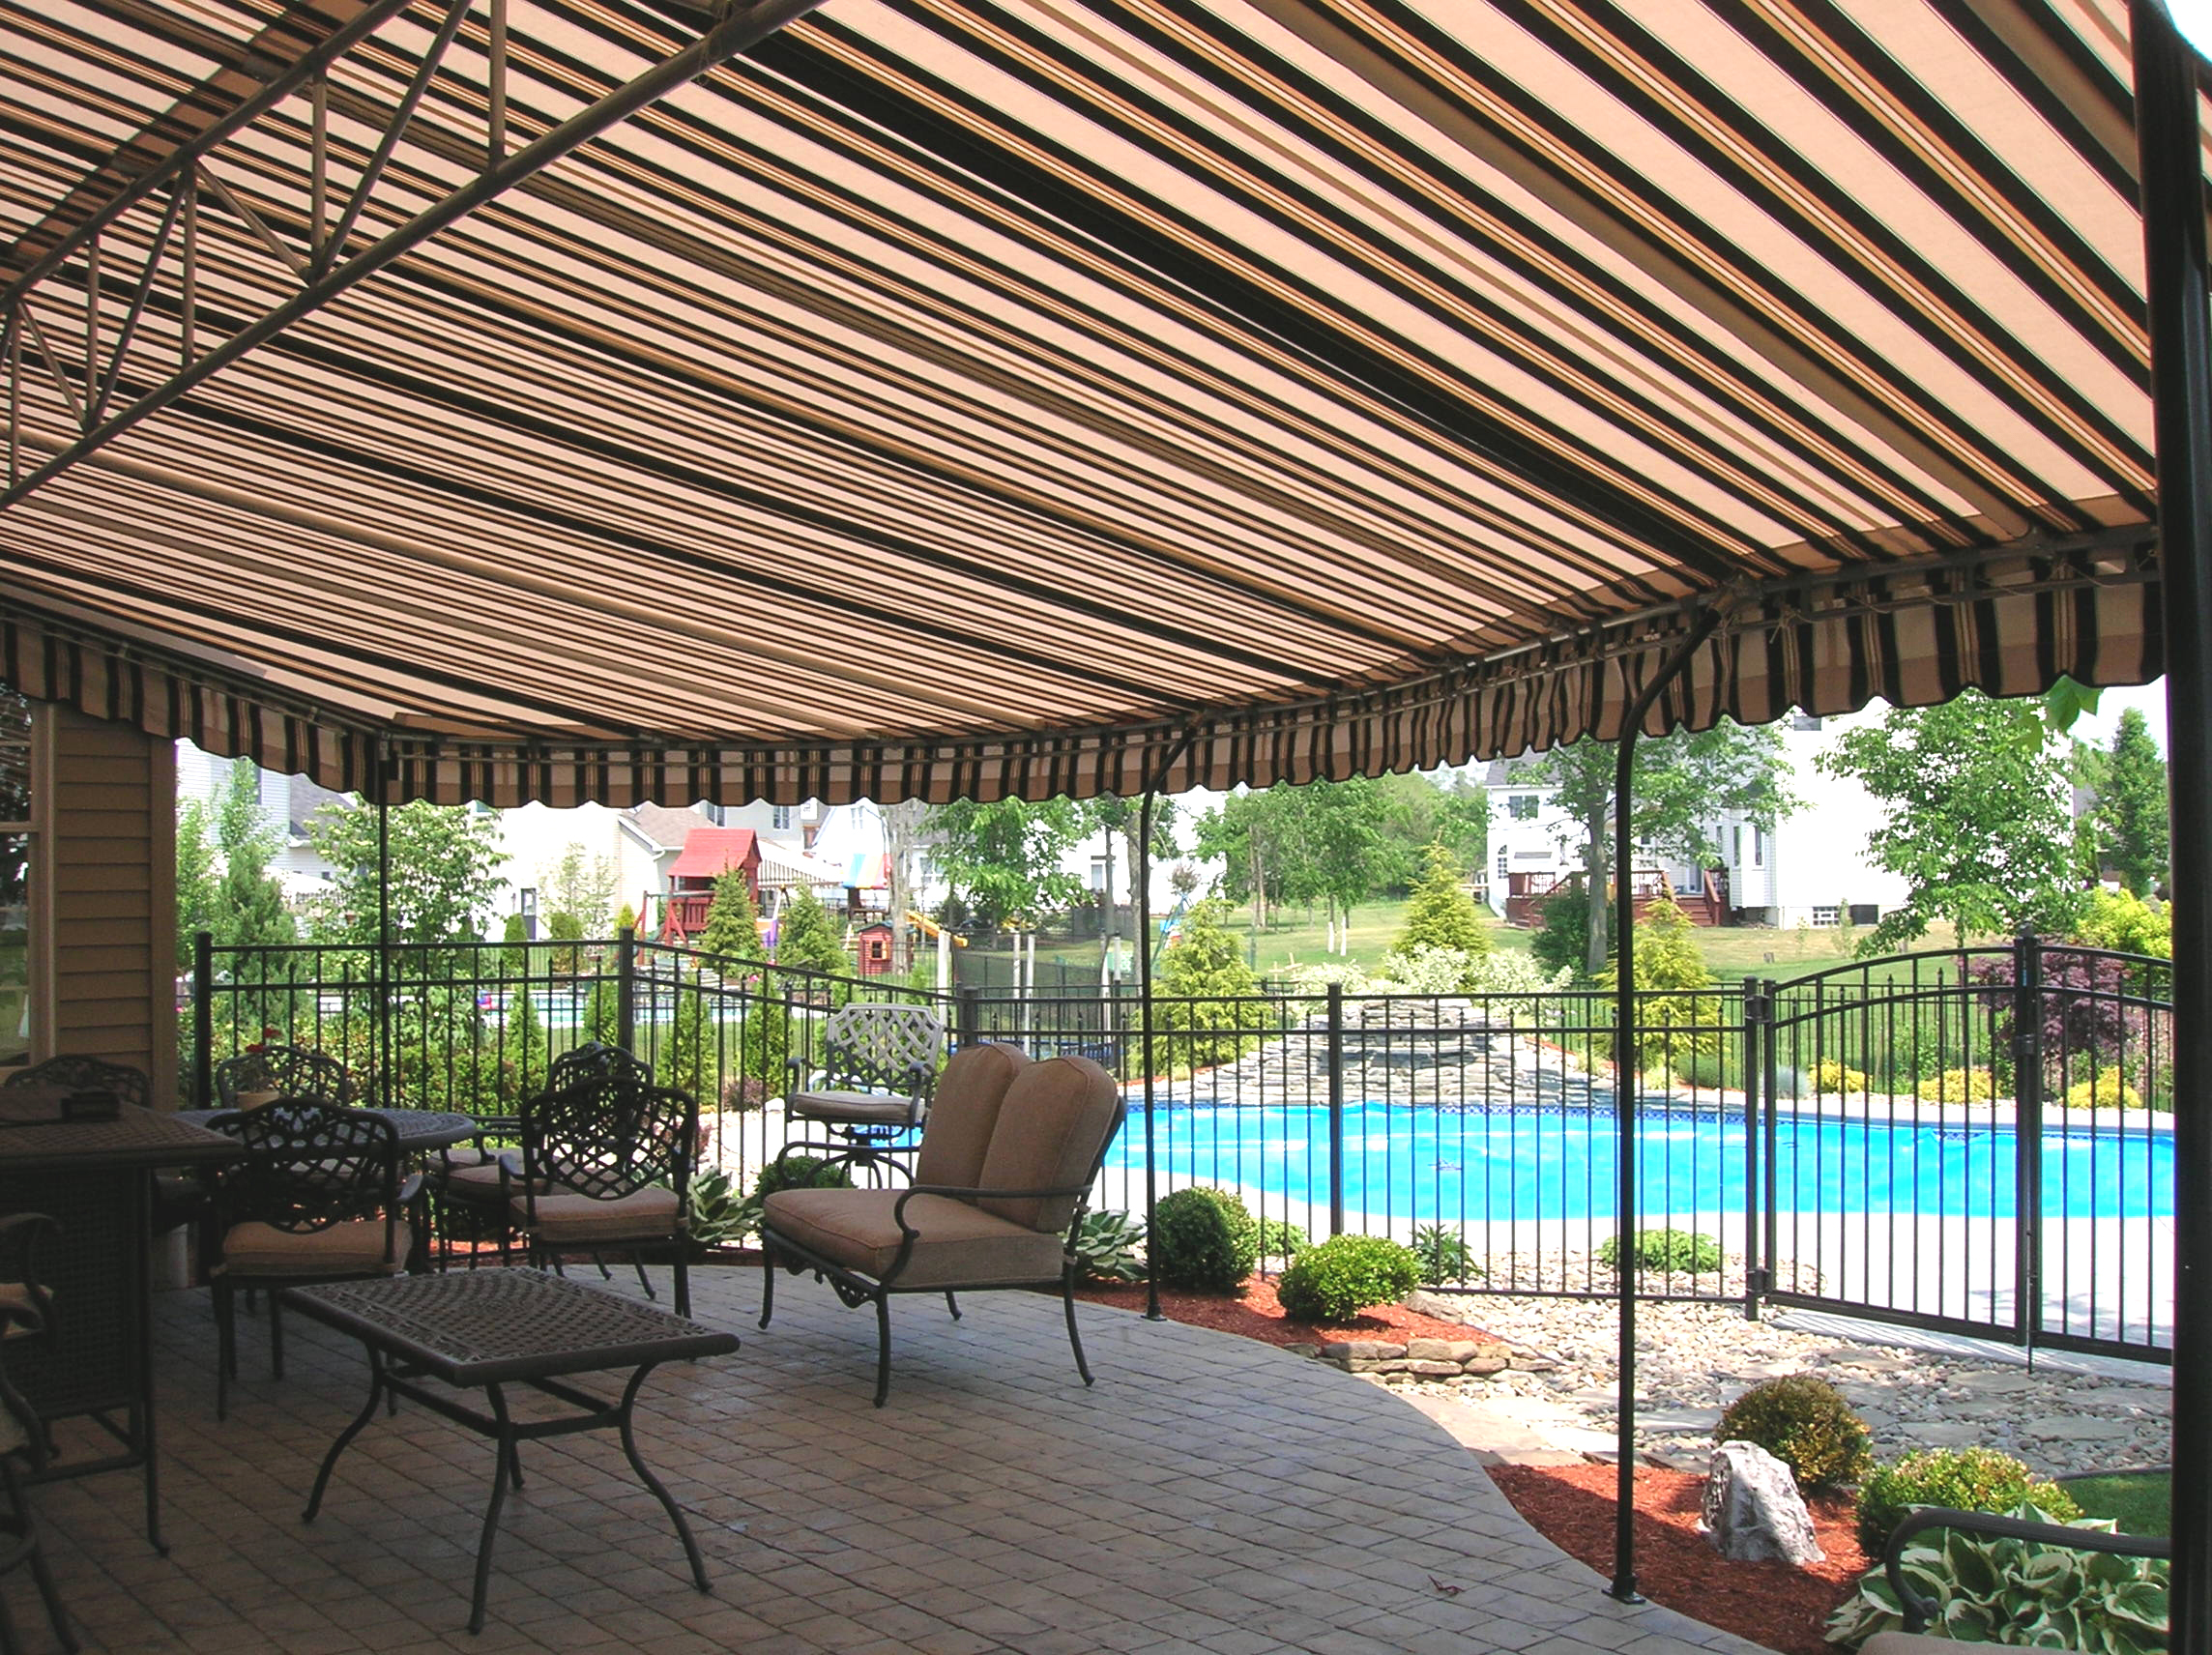 Awning By The Pool